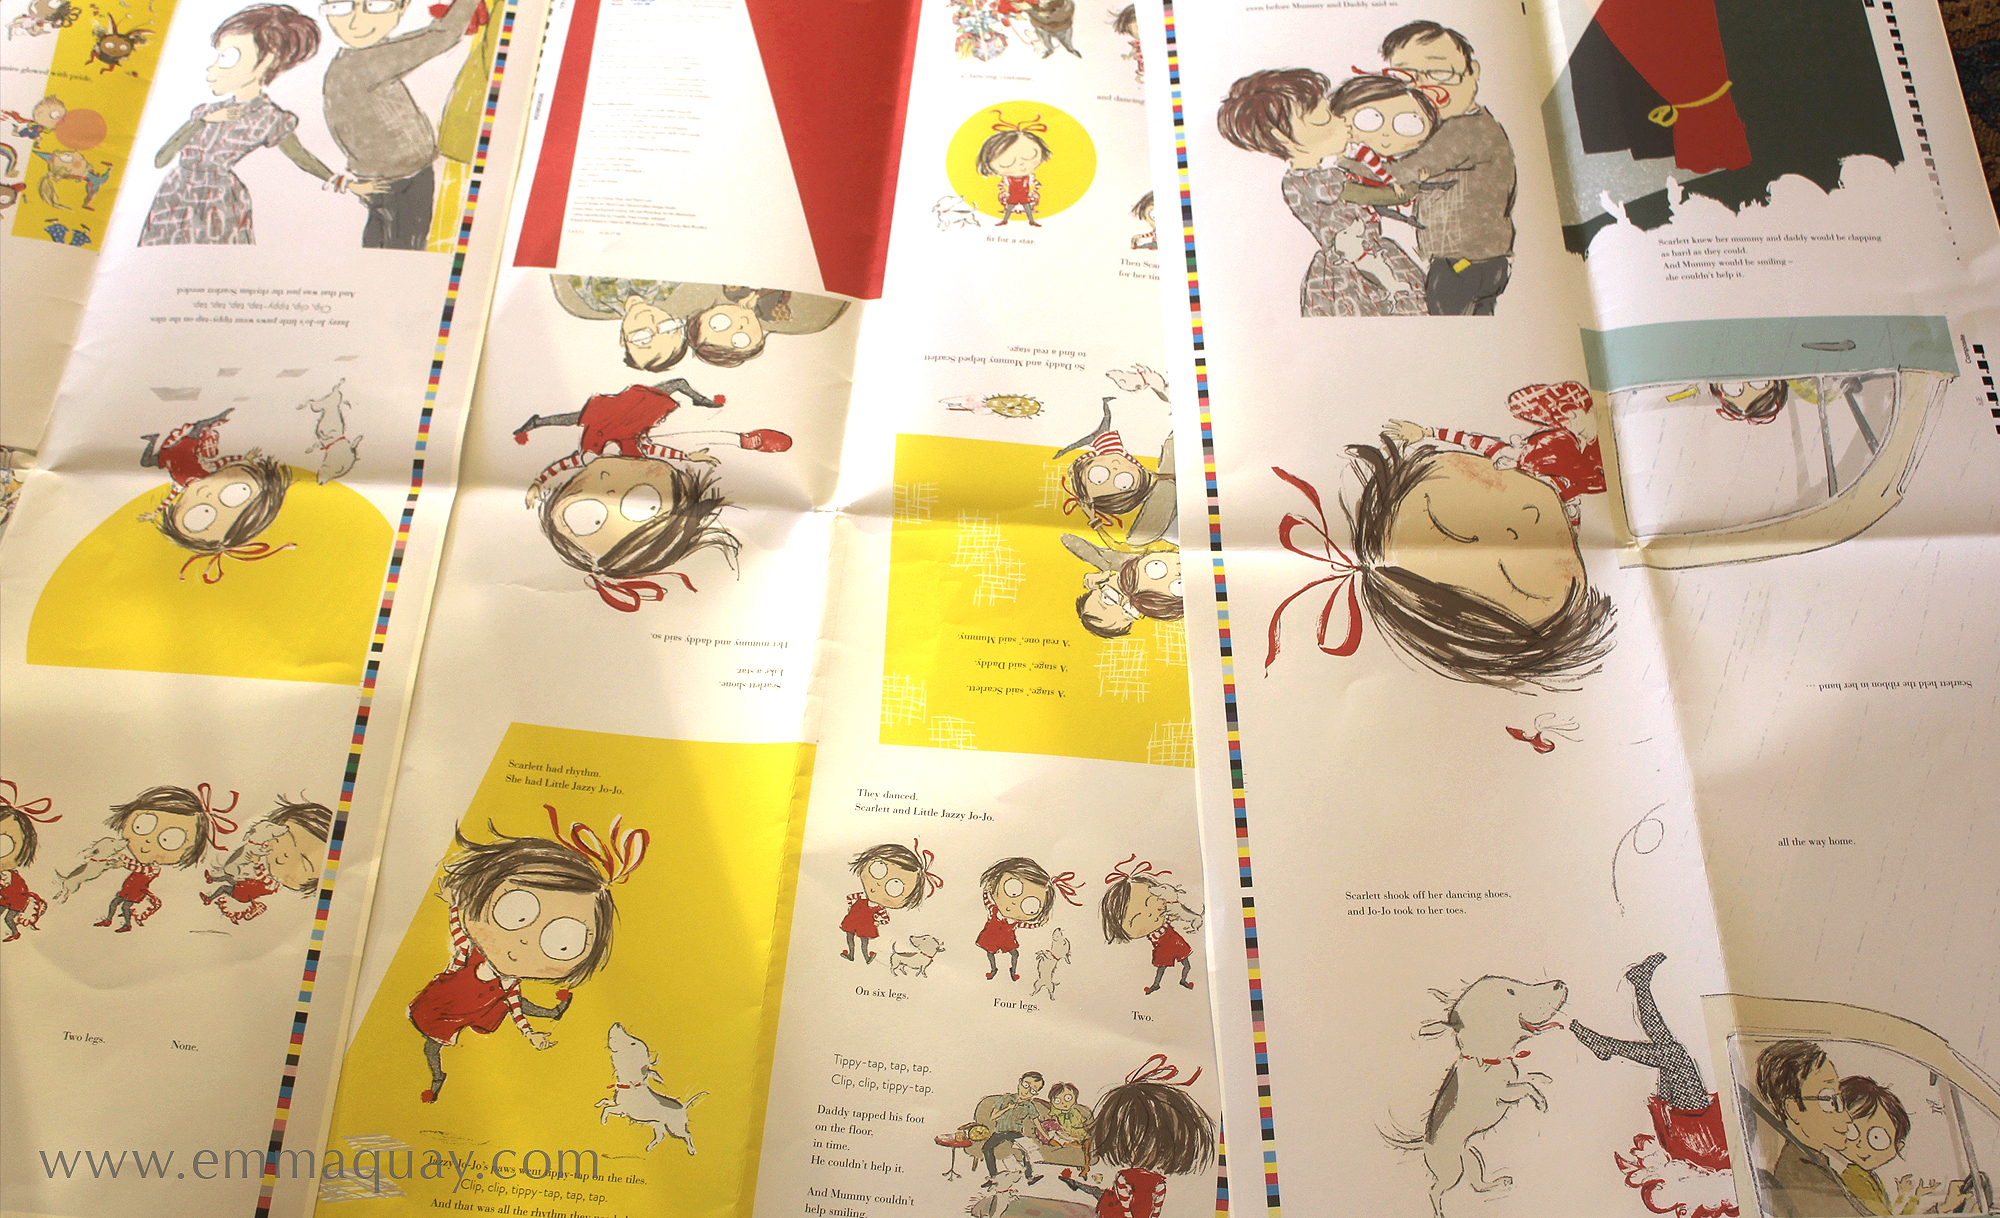 Once the design was finalised, the pages and cover were proofed. I checked the print proofs to check all the colours looked as I hoped. They did – phew!